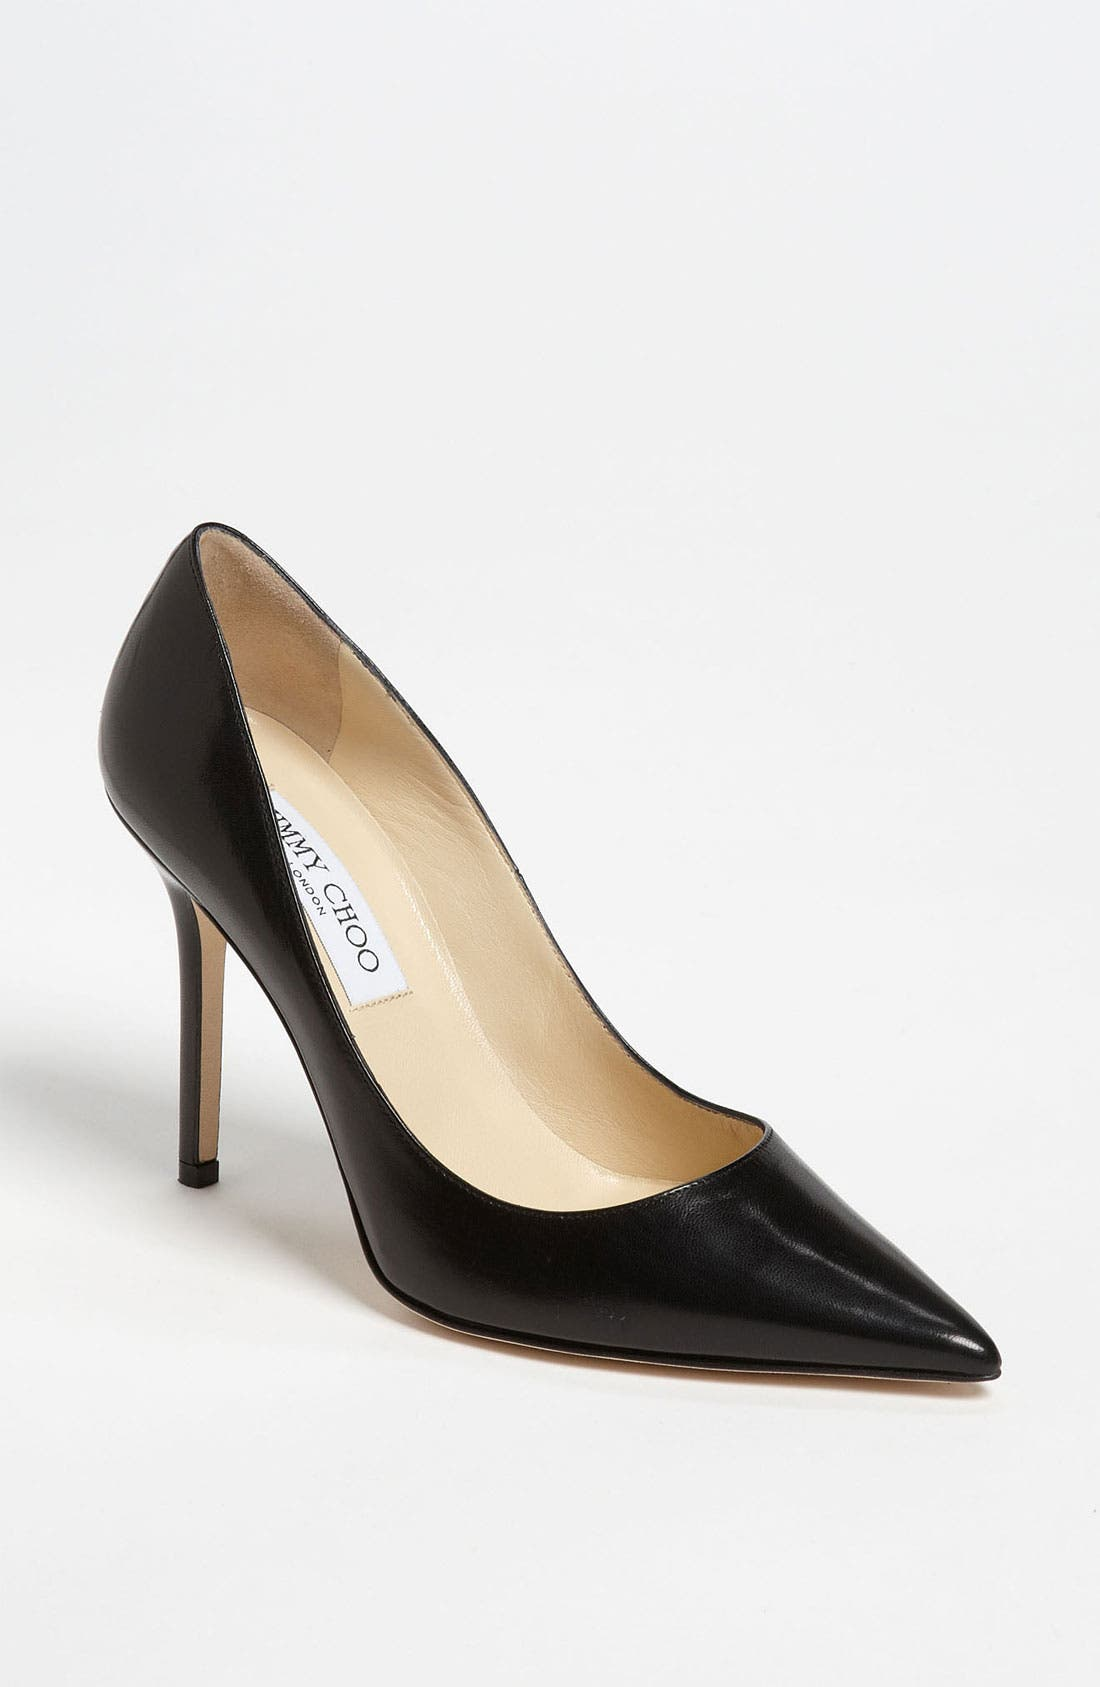 Alternate Image 1 Selected - Jimmy Choo 'Abel' Pump (Women) (Nordstrom Exclusive)